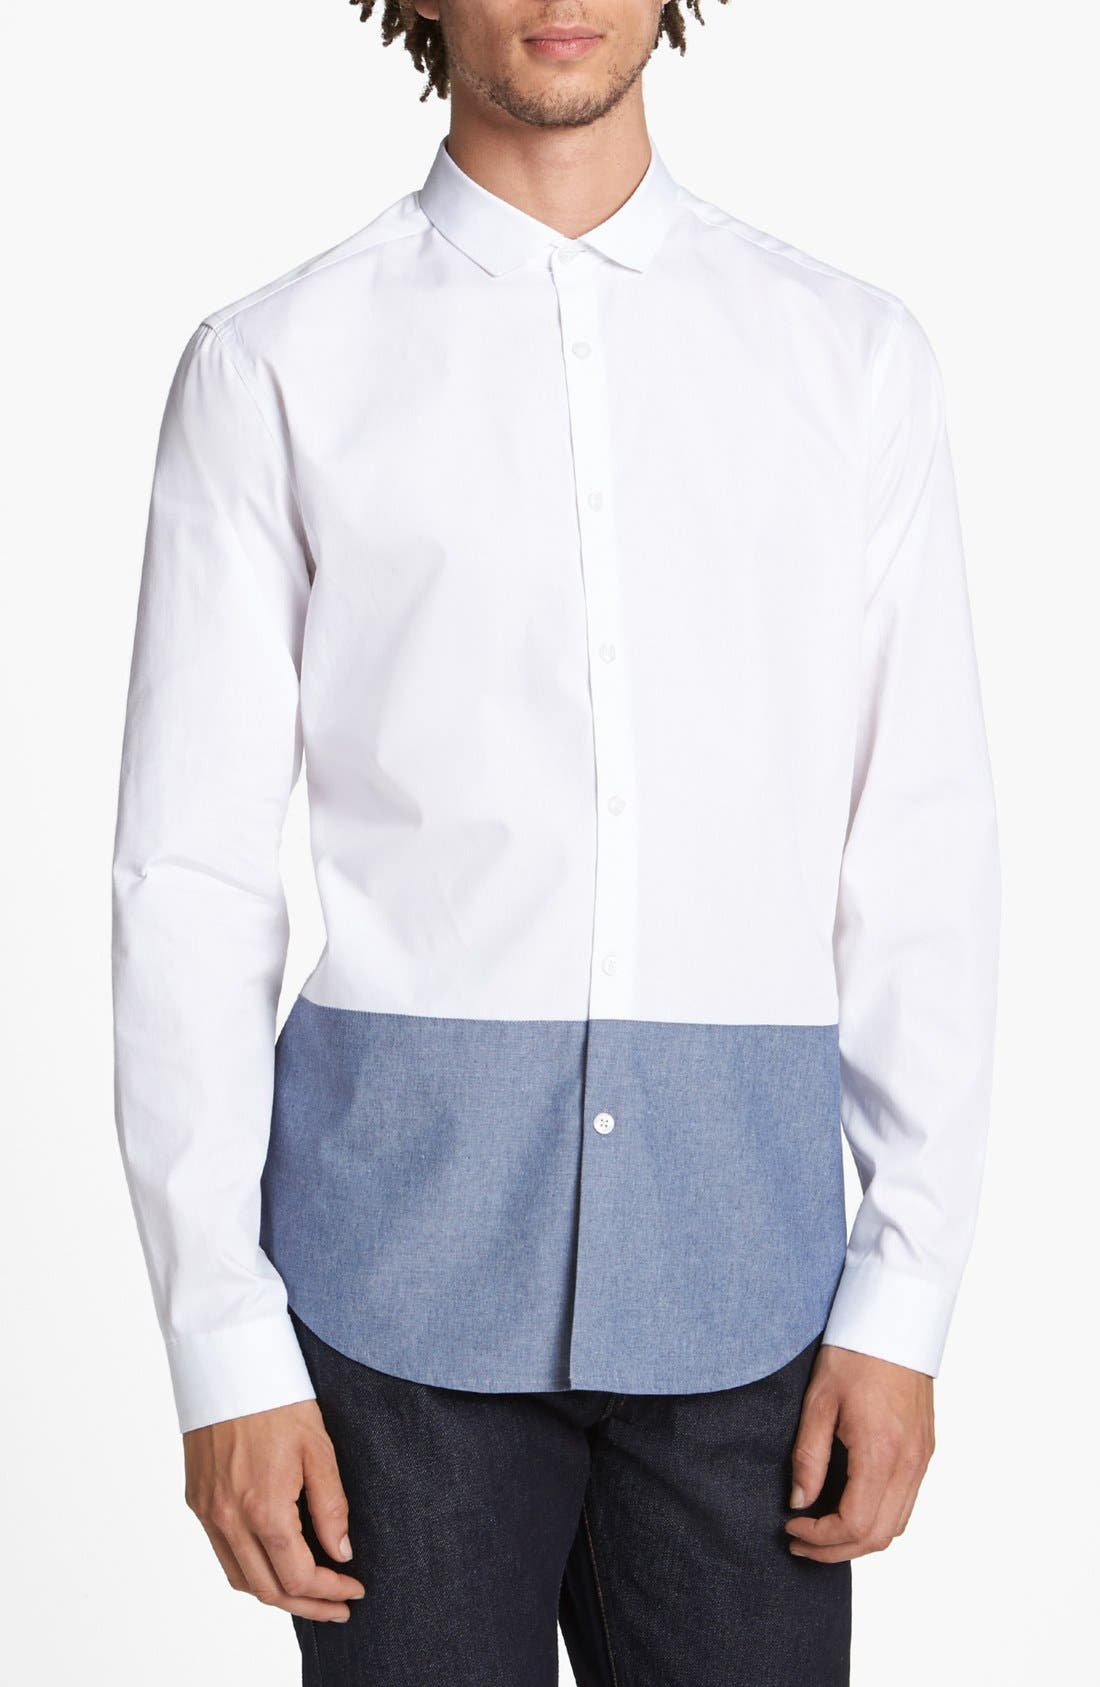 Alternate Image 1 Selected - Topman 'Smart' Slim Fit Contrast Dress Shirt